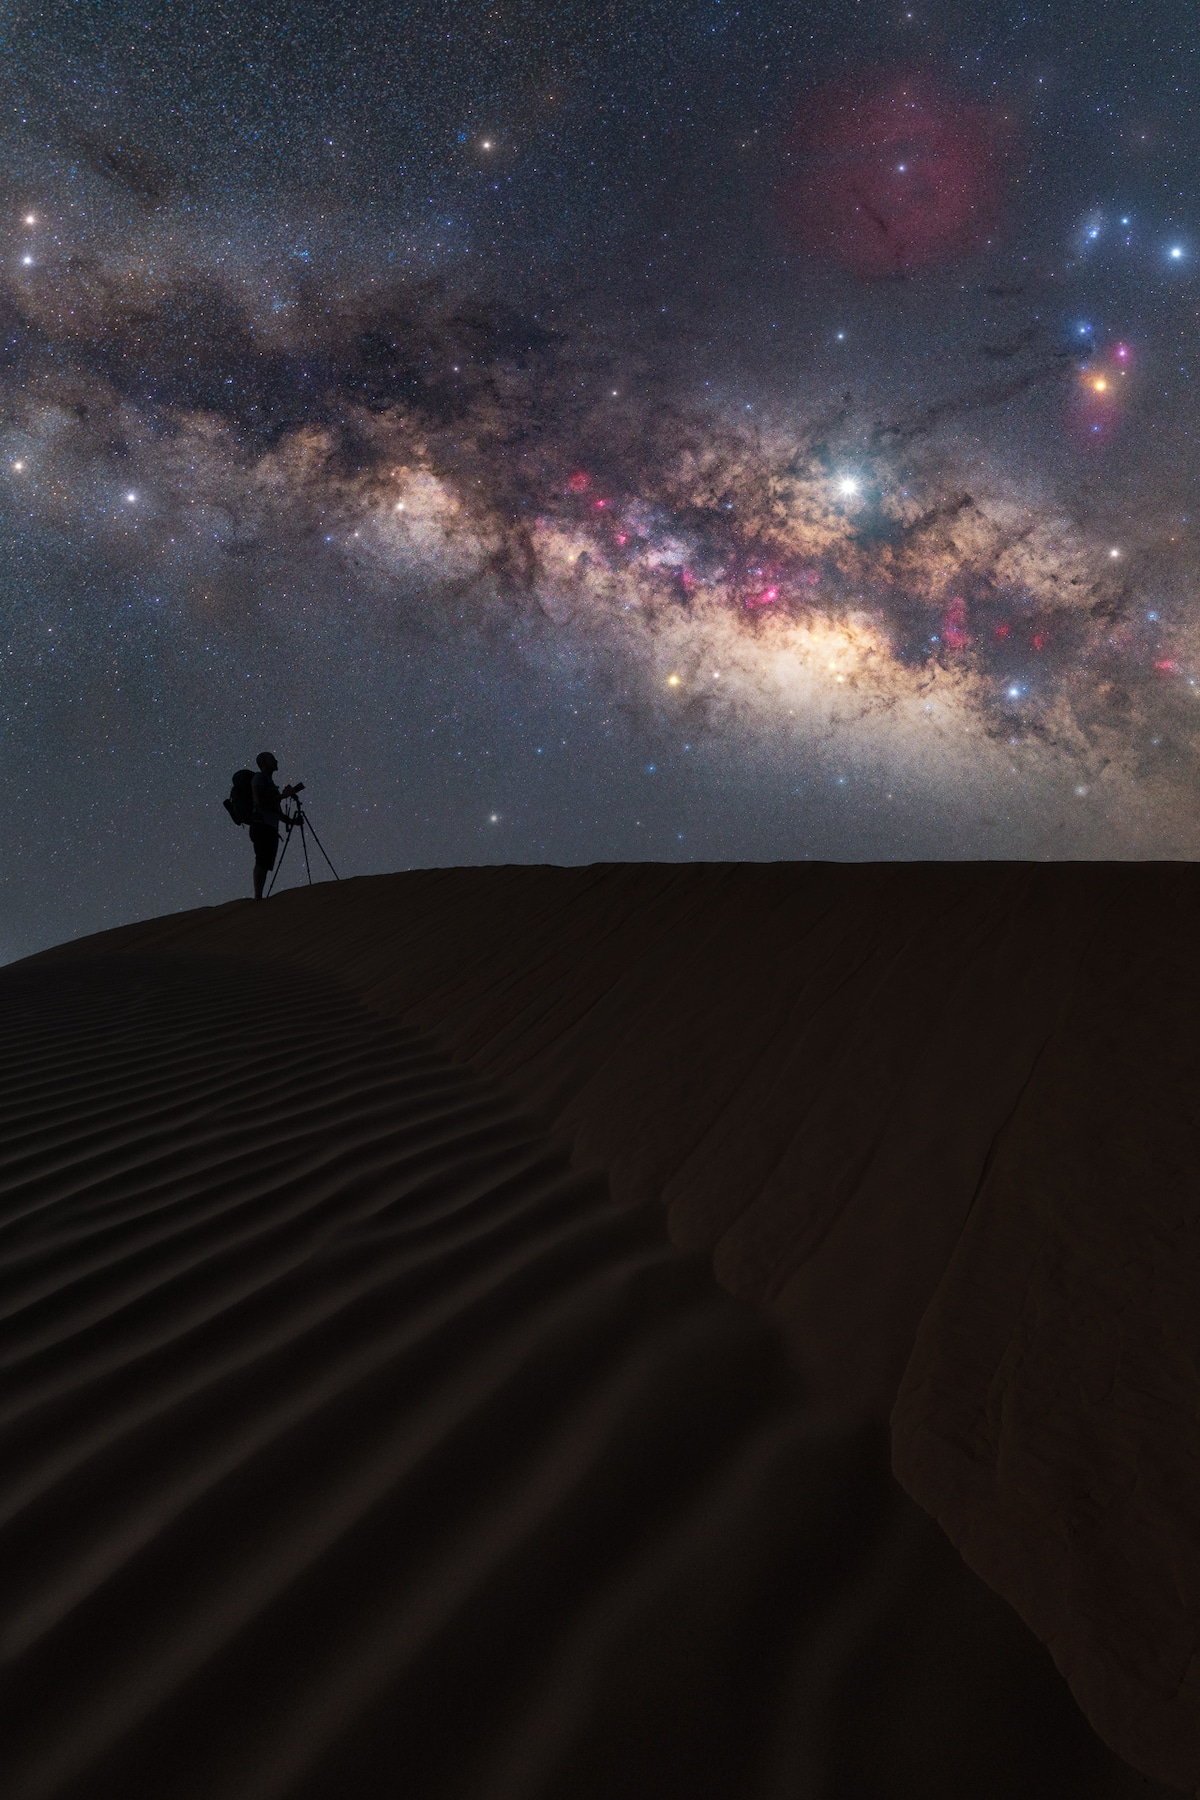 Milky Way in the Sahara Desert